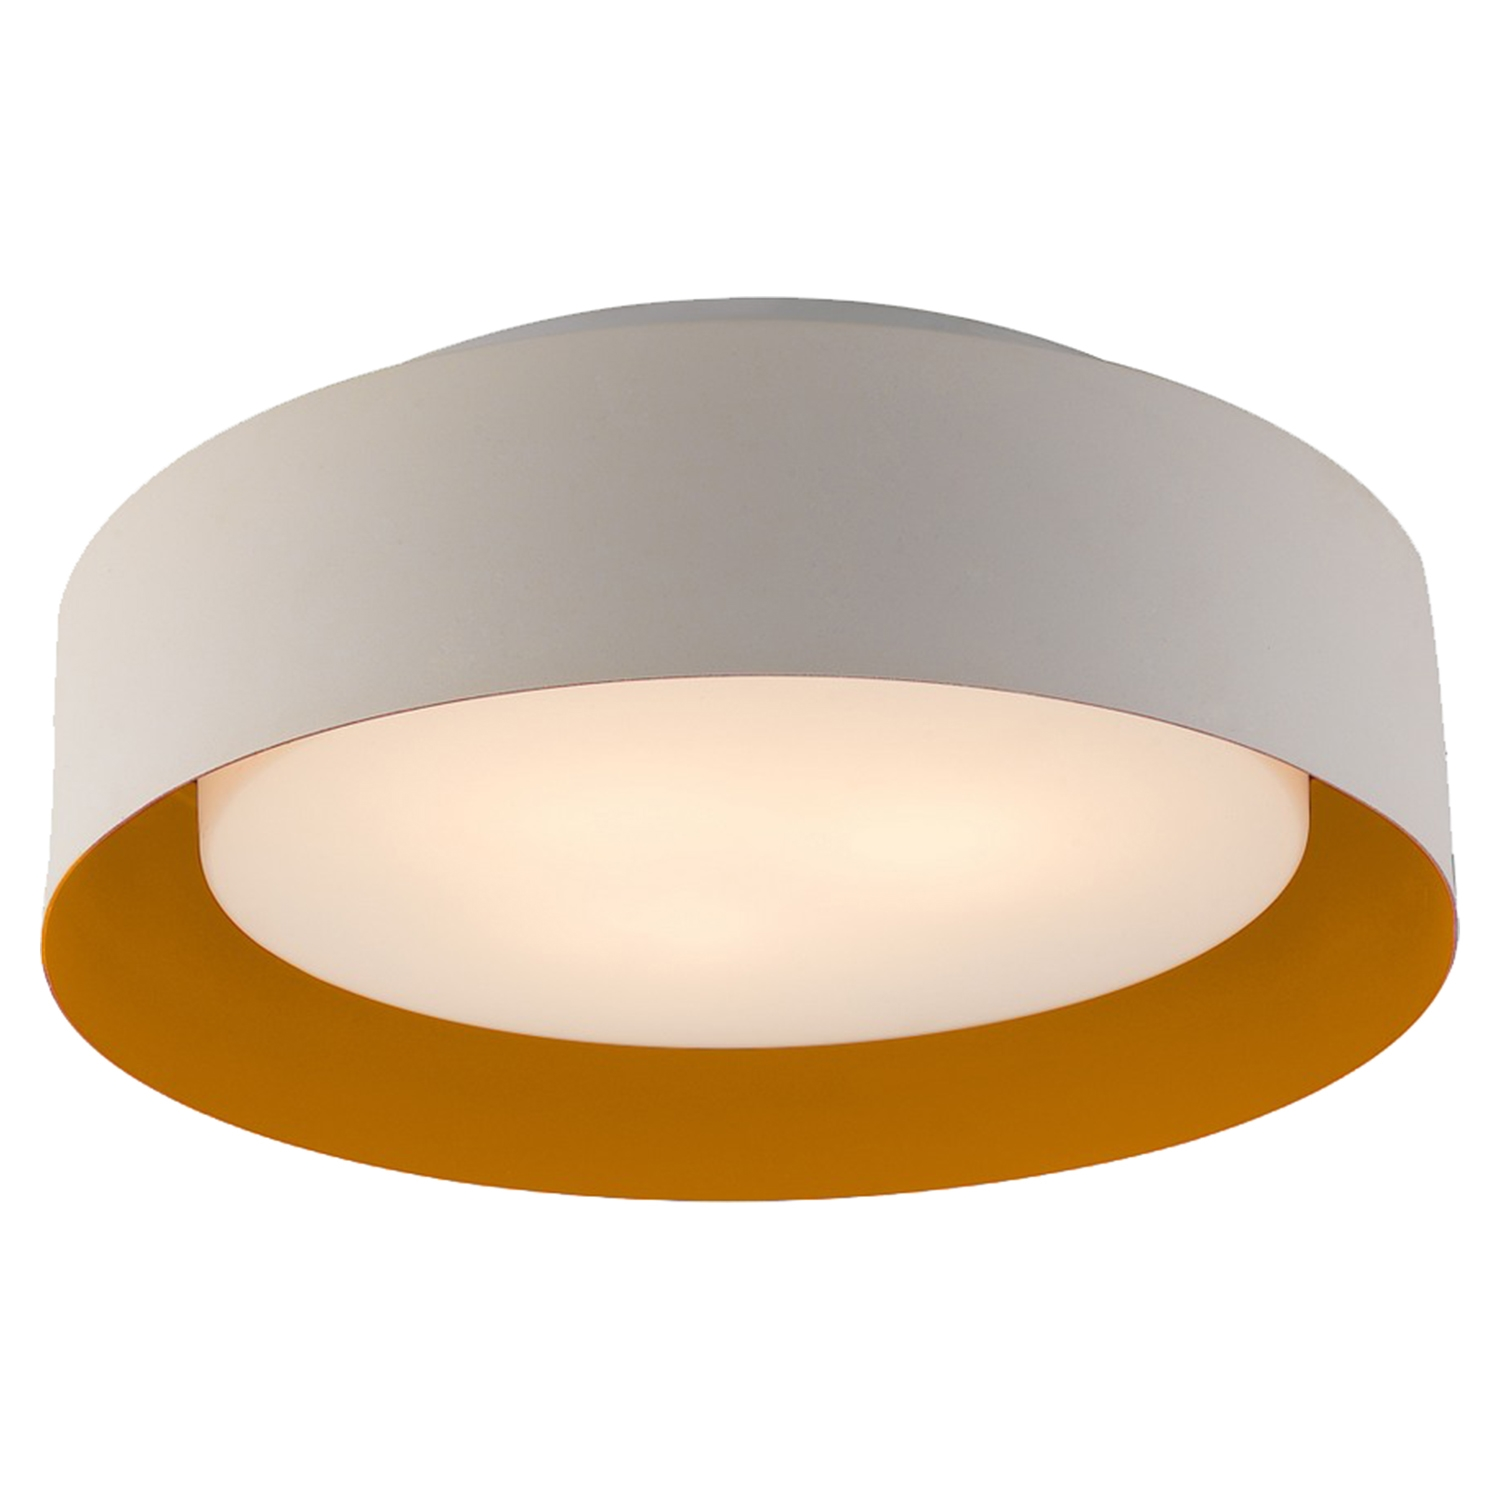 Lynch Flush Mount Ceiling Light White and Orange DCG  : b4106o from www.dcgstores.com size 1000 x 1000 jpeg 176kB